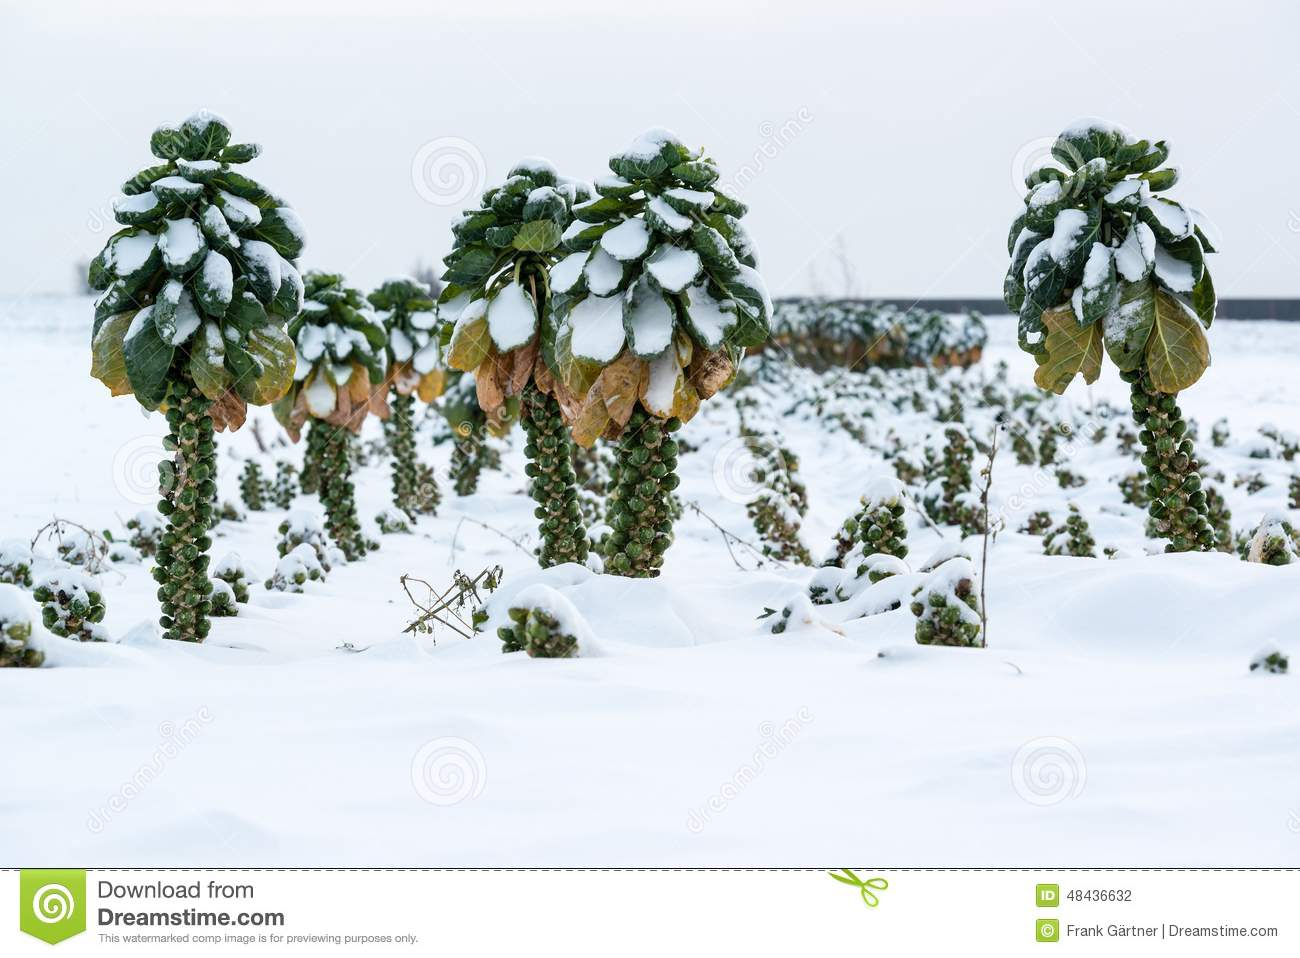 Brussels Sprouts In Snow Stock Photo.